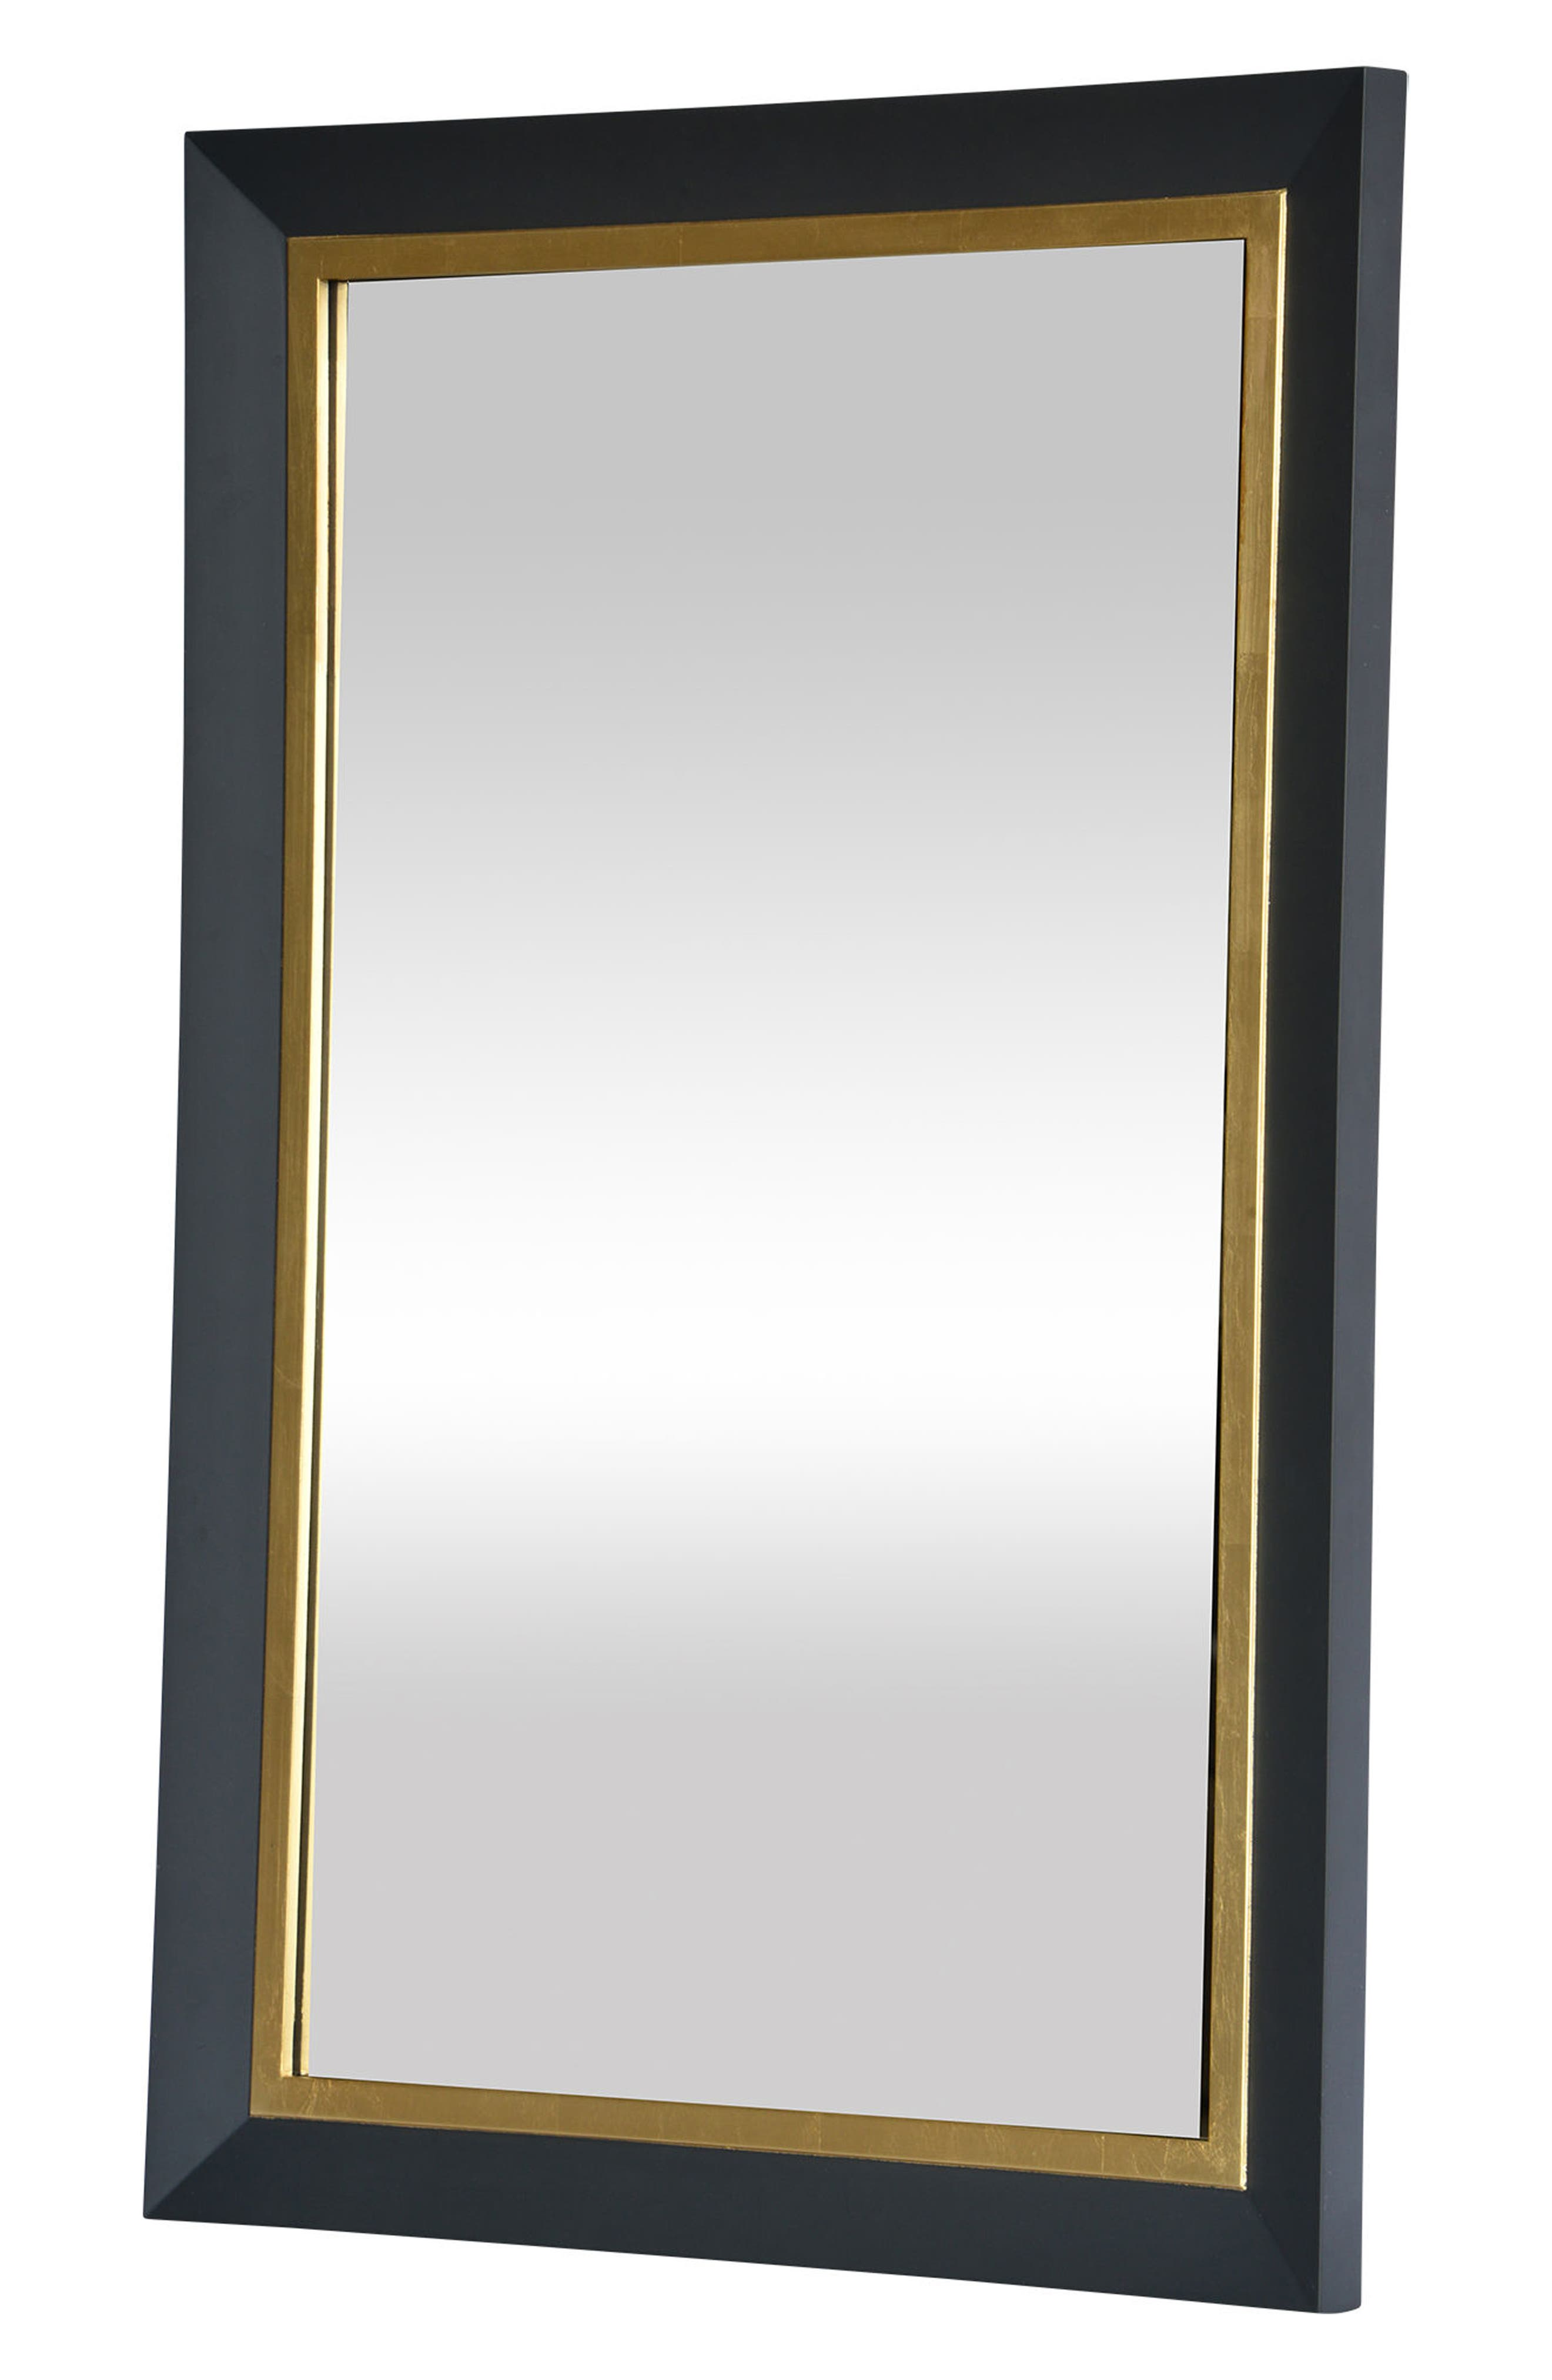 Beillings Mirror,                             Alternate thumbnail 2, color,                             Dark Grey And Antique Gold